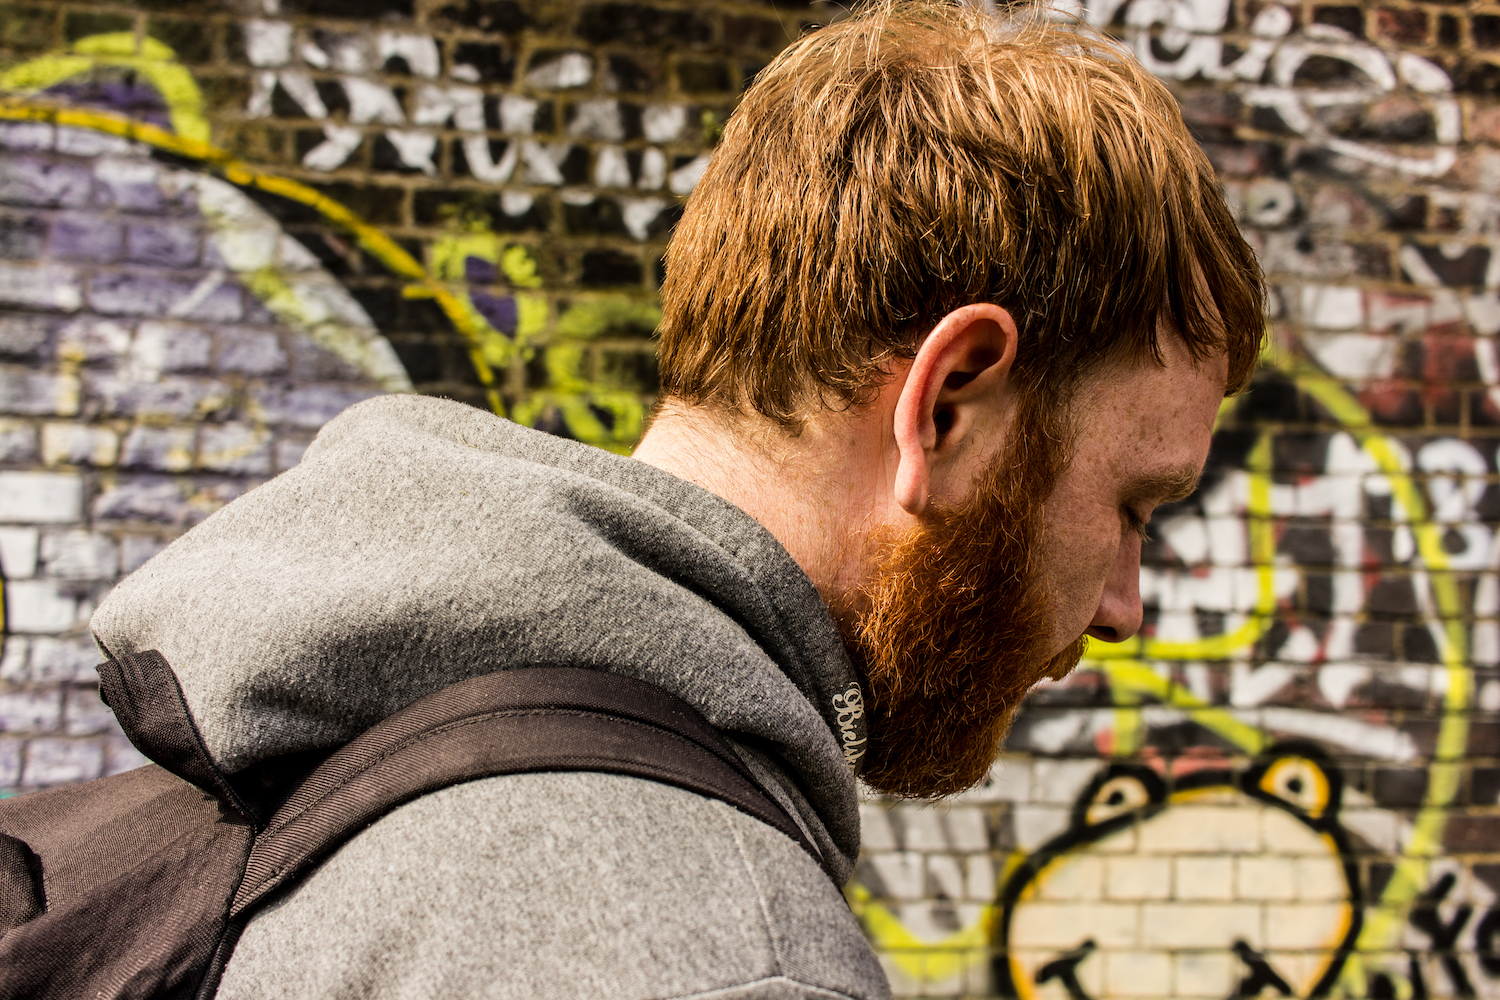 Professional Photography White Man With Beard Grey Hoodie And Black Backpack Walking In Front Of Graffiti Wall